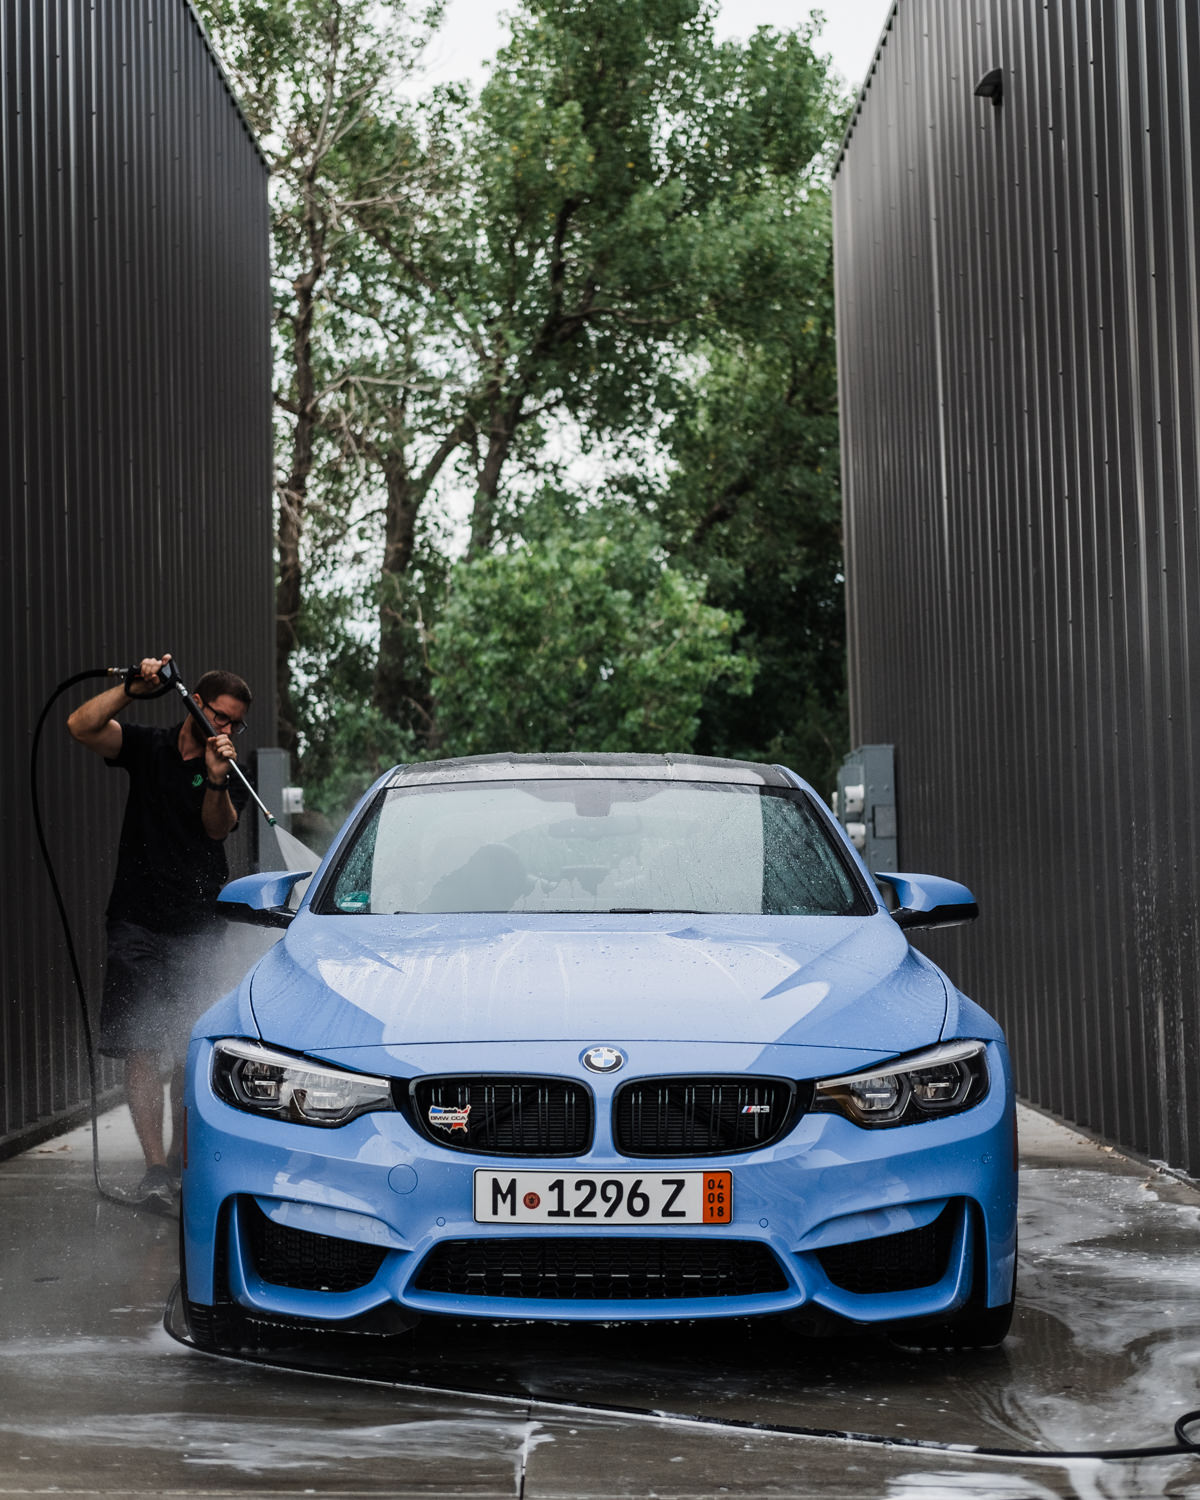 Bmw M3 F80 Xpel Paint Protection Film Ceramic Pro Wichita Clear Bra Ceramic Coatings Paint Protection Film And Window Tint